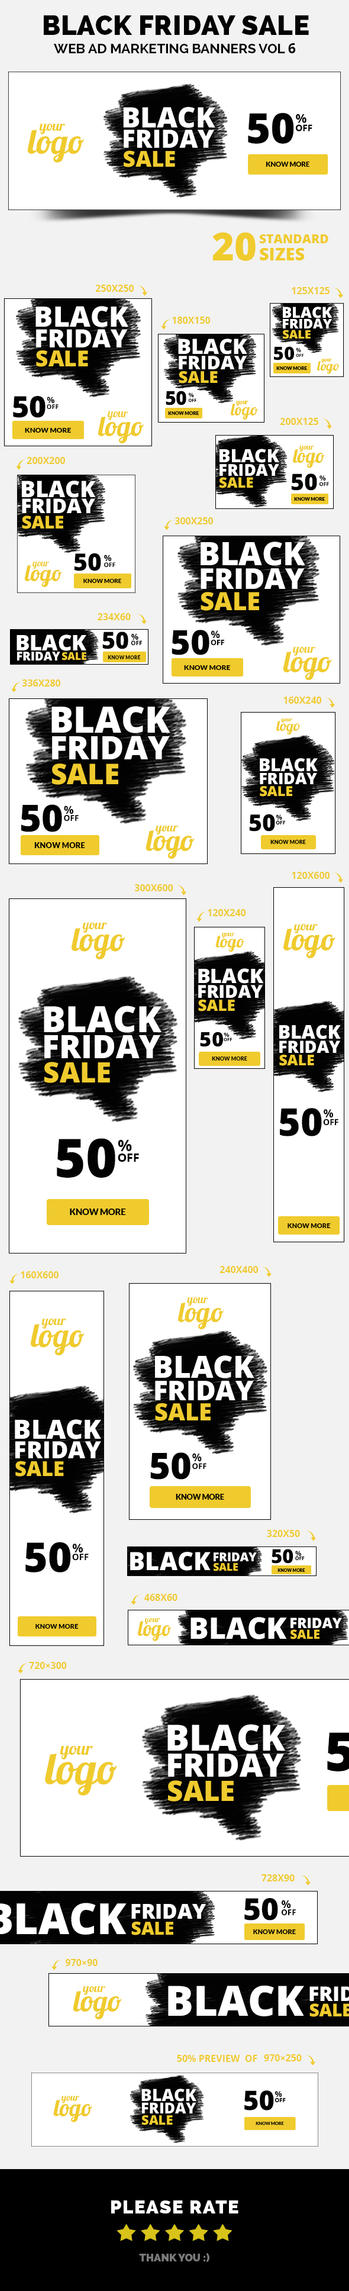 Black Friday Sale Web Ad Marketing Banners by webduckdesign